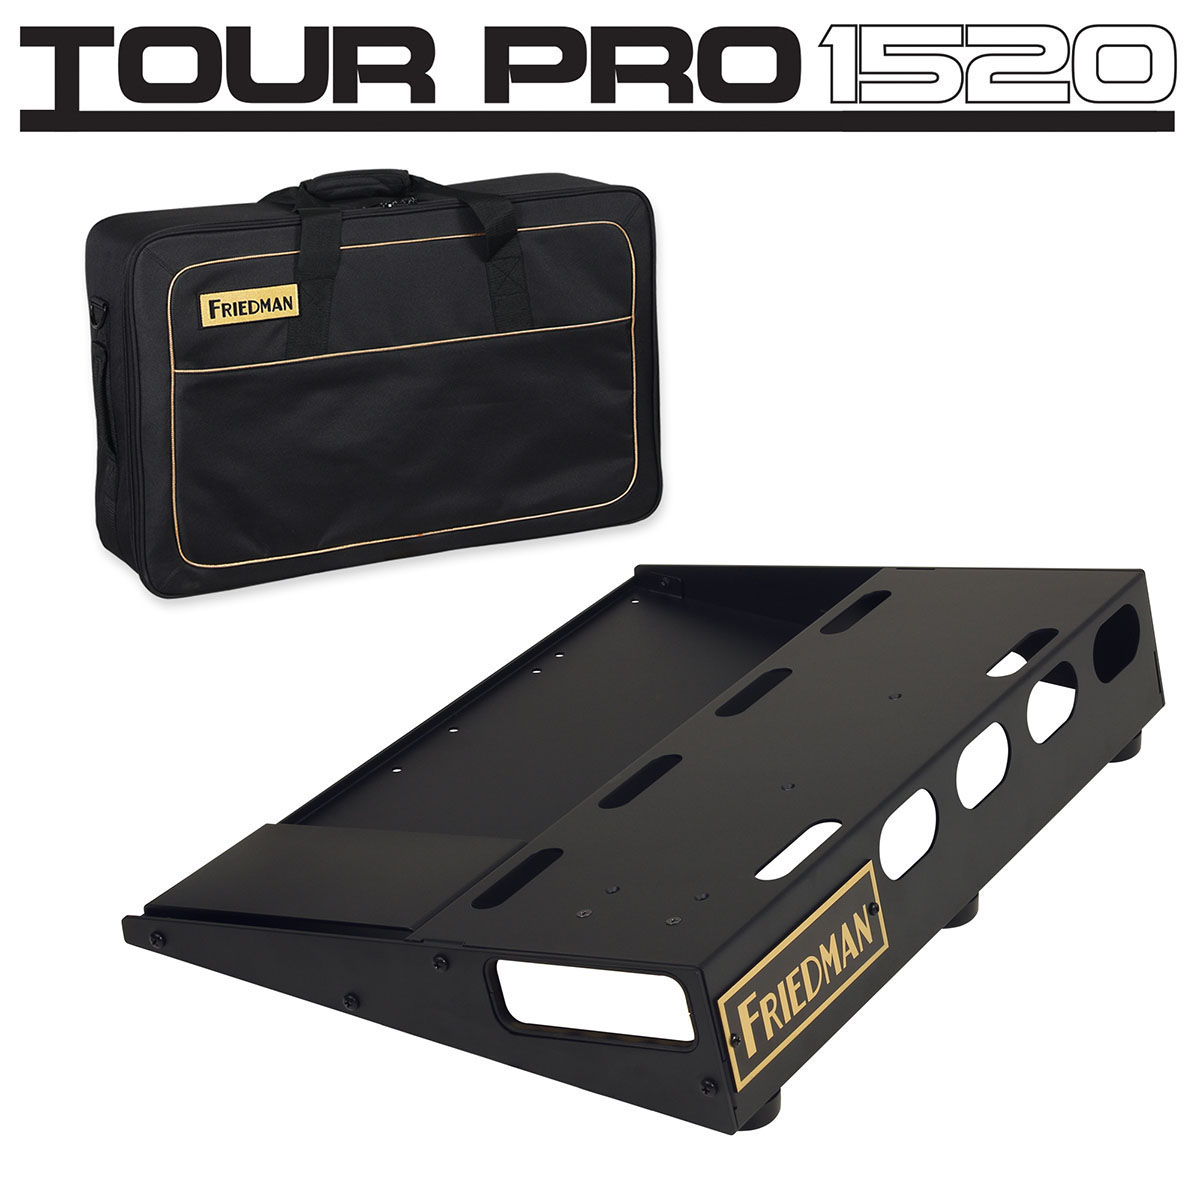 FA_TourPro1520_1200px-no-acc-pack.jpg